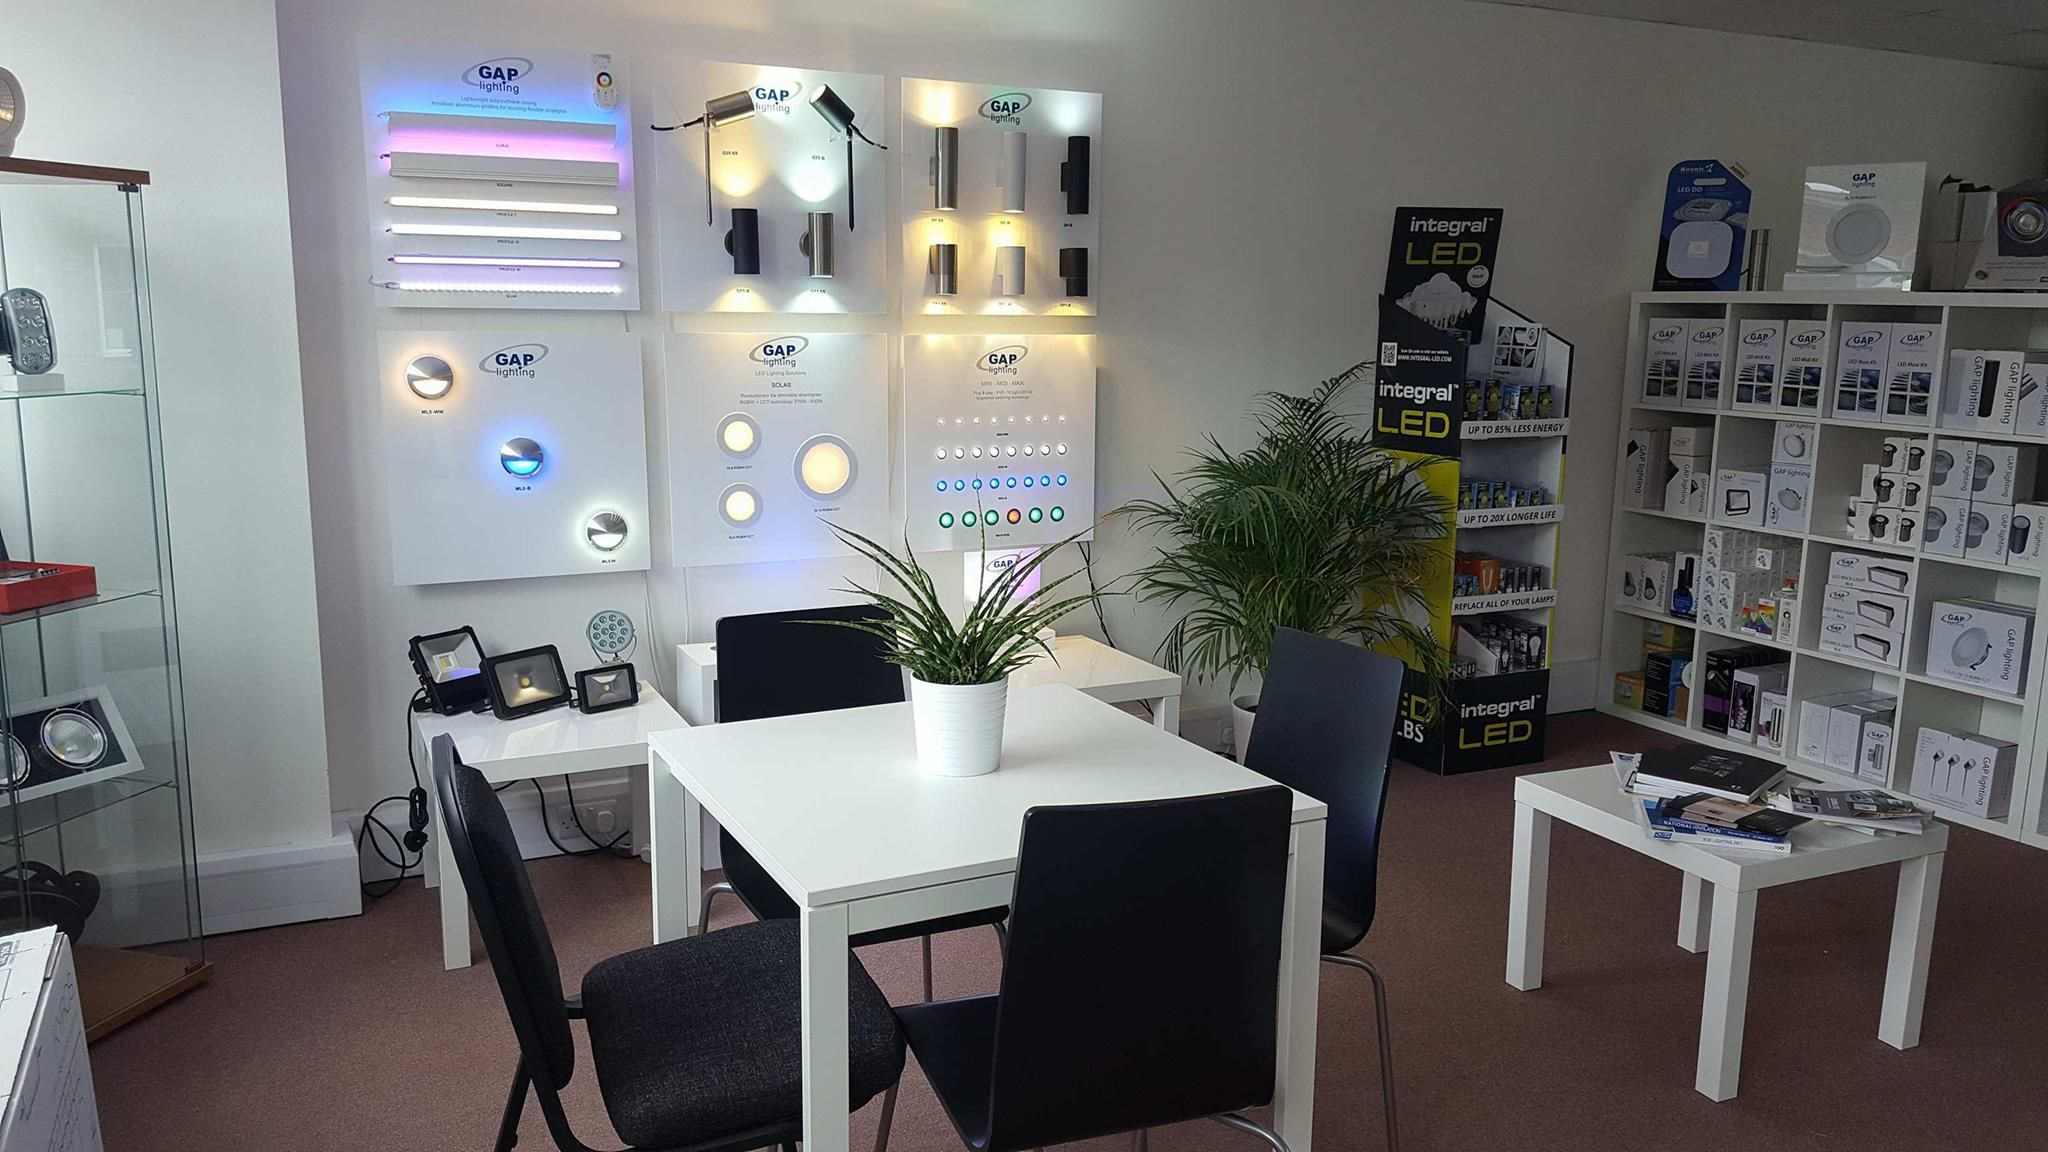 Source electrical supplies showroom LED lighting electrical